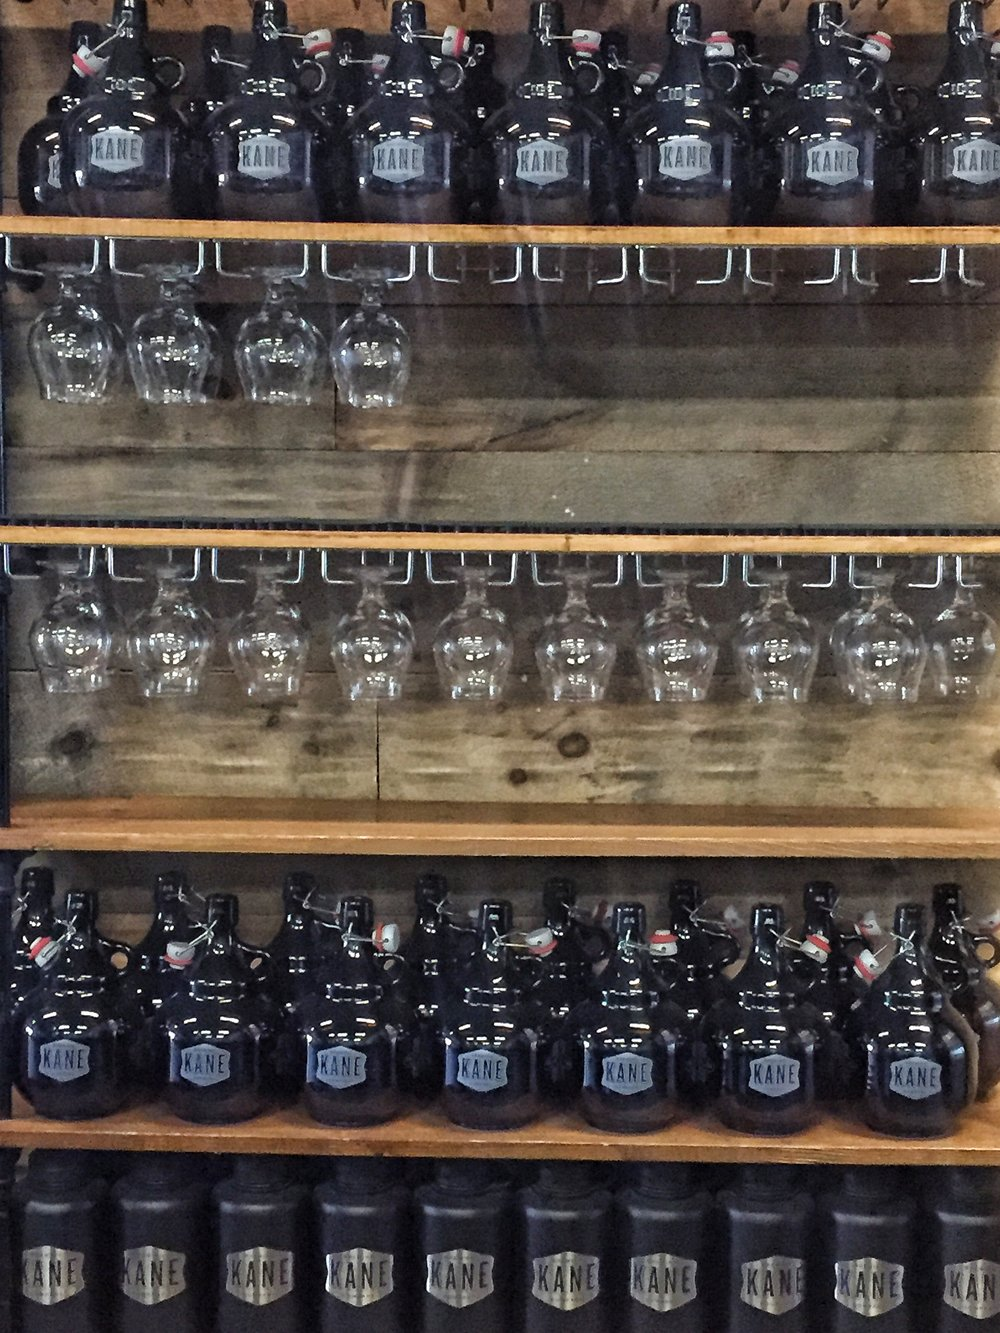 Growlers, glasses, stainless steel containers. You know this gets at my zero waste heart.